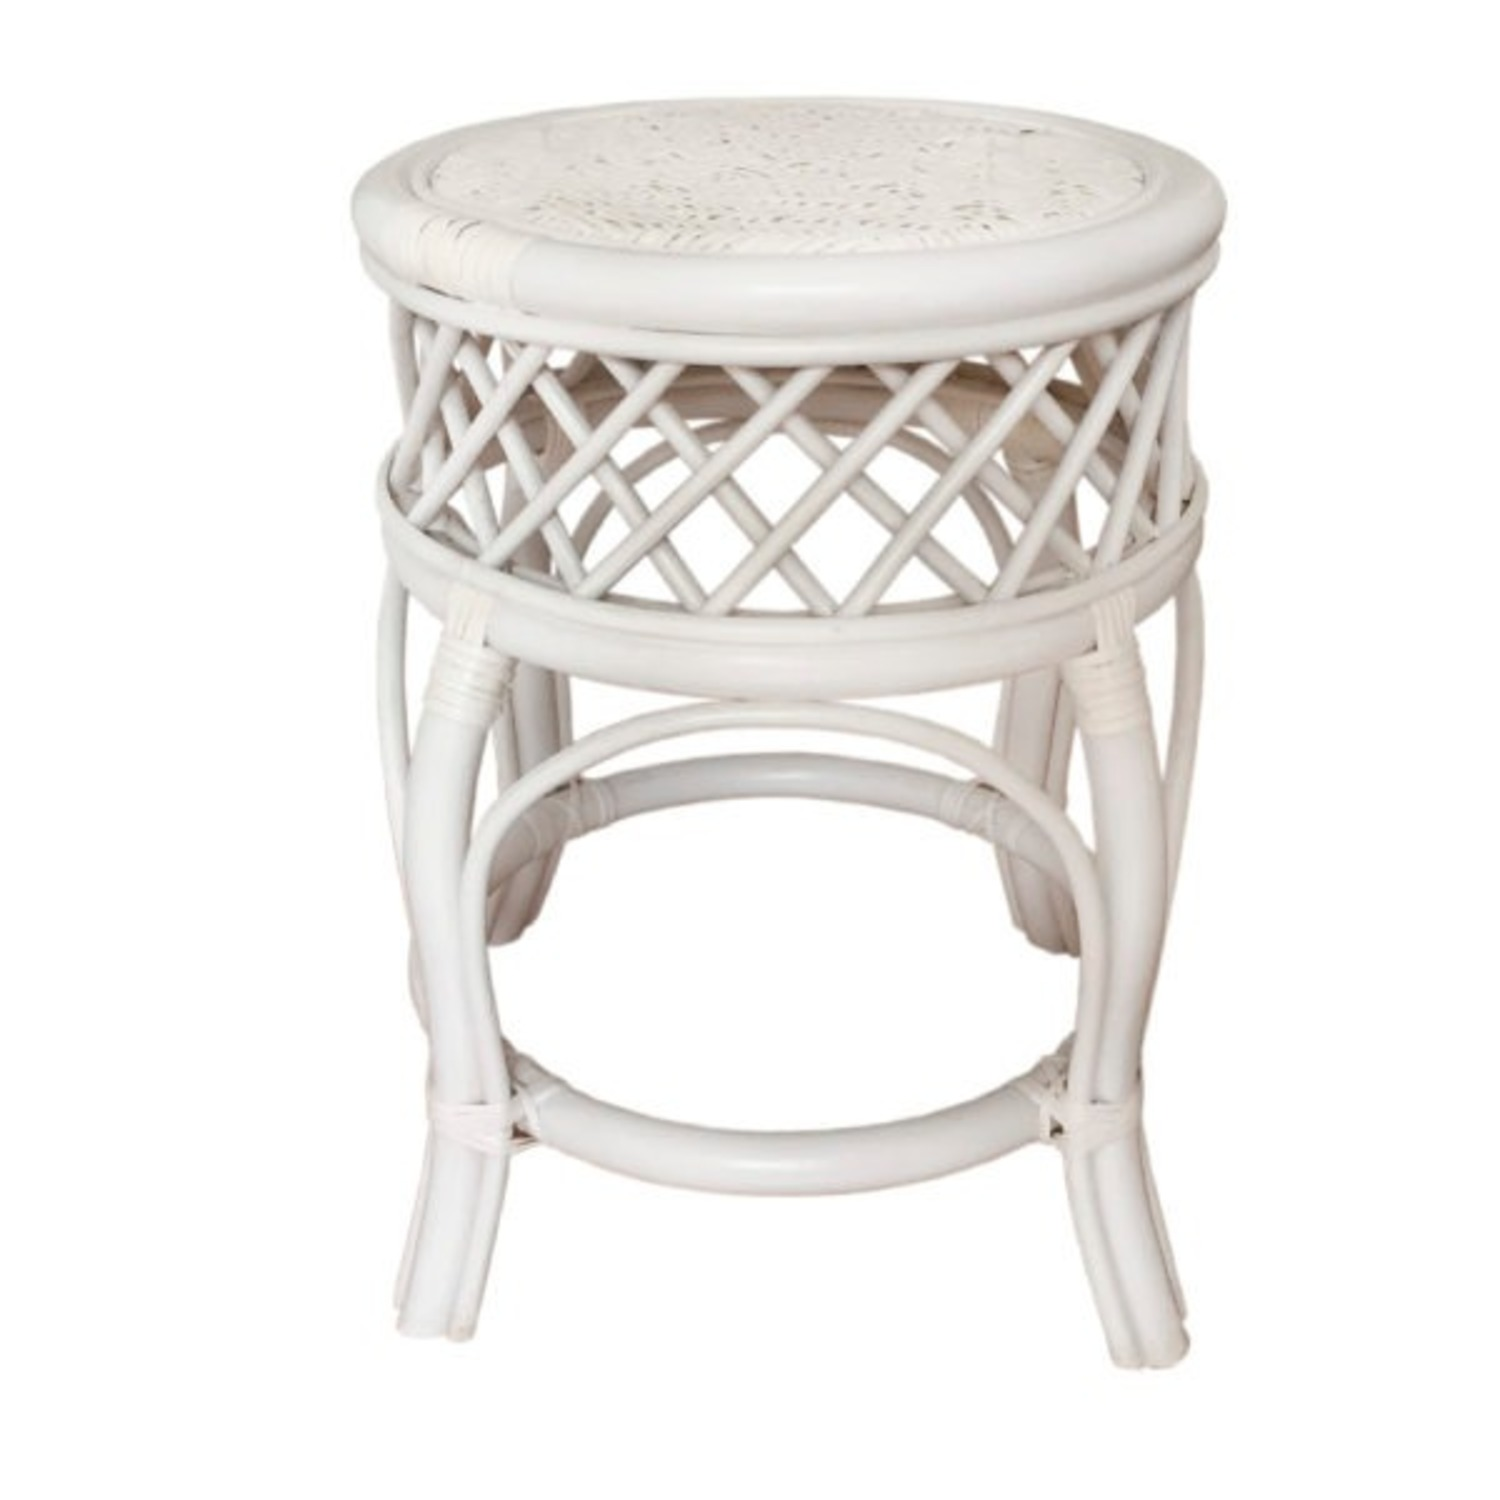 Mary Round White Solid Rattan Stool - image-2